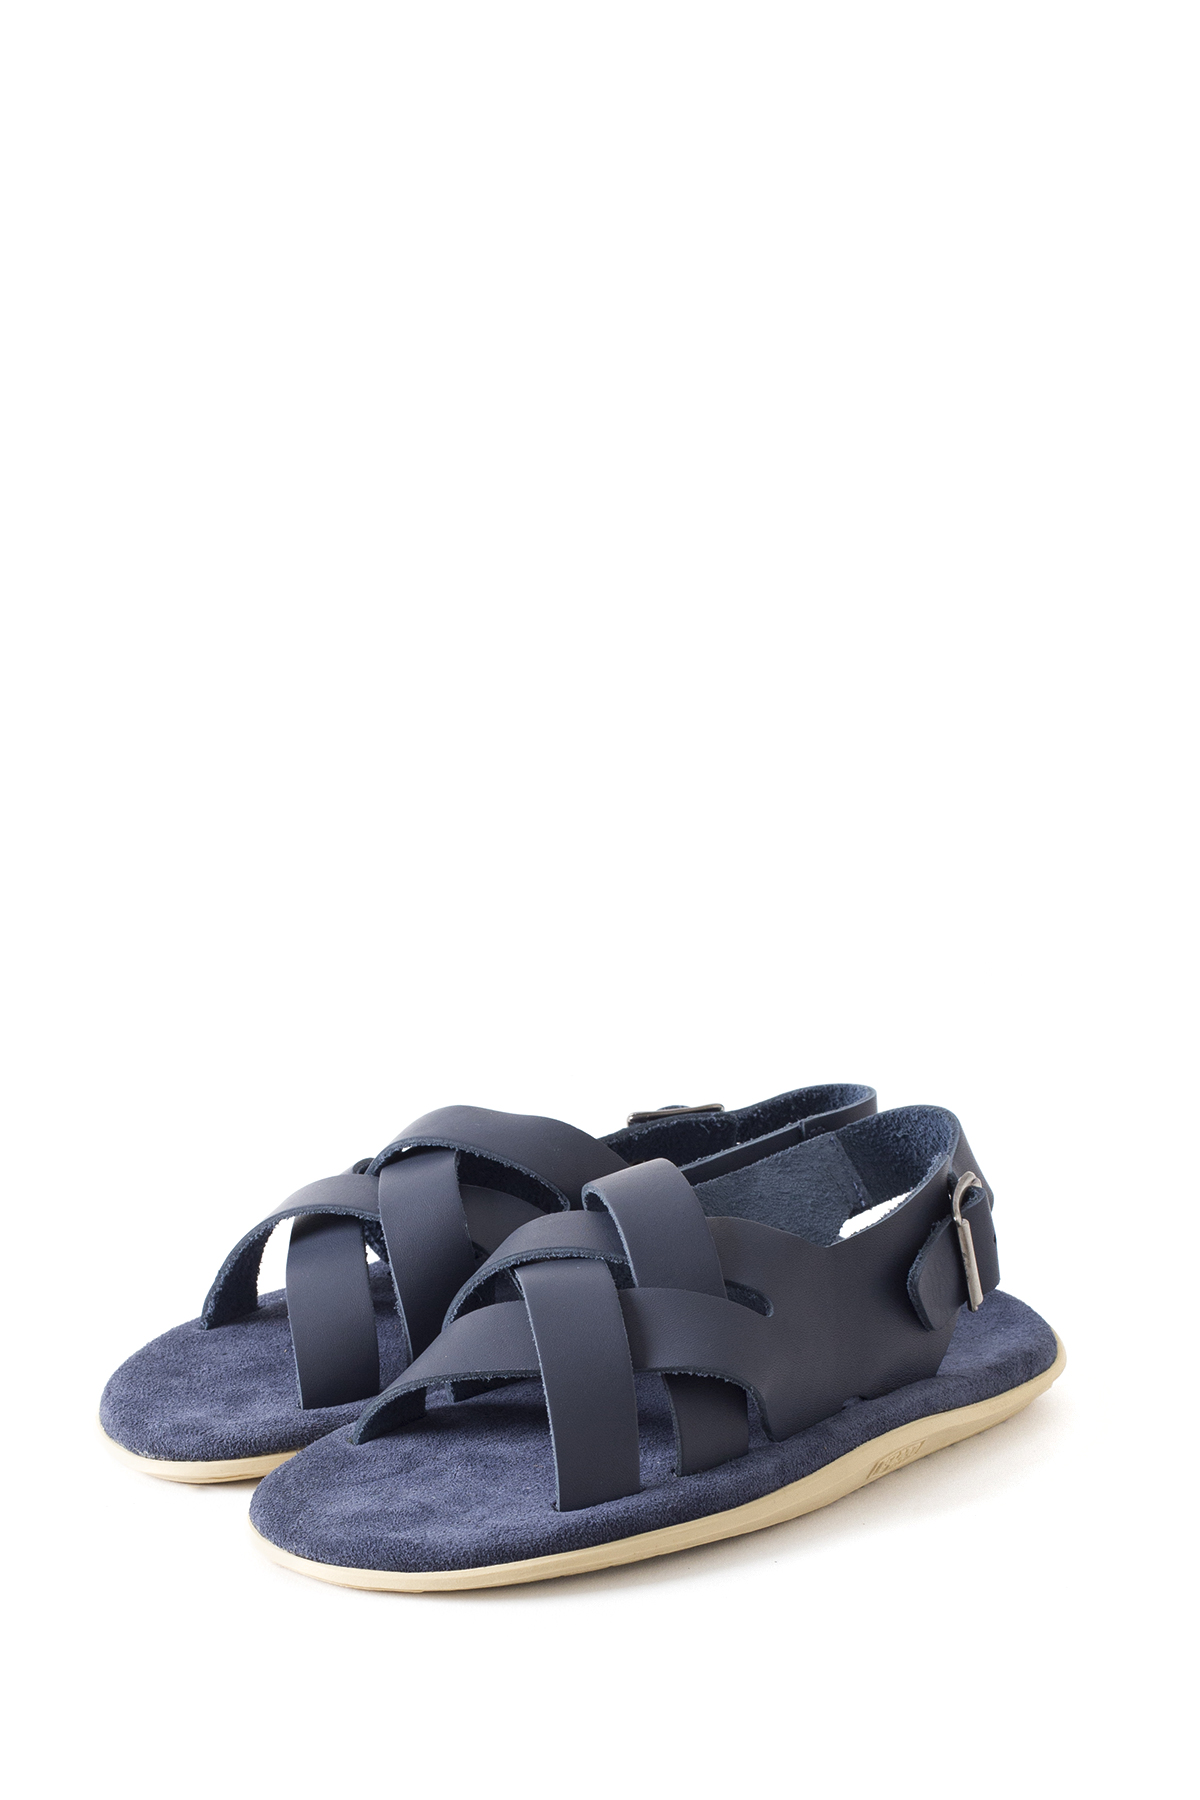 ISLAND SLIPPER : PT408 (Leather Suede / Navy)